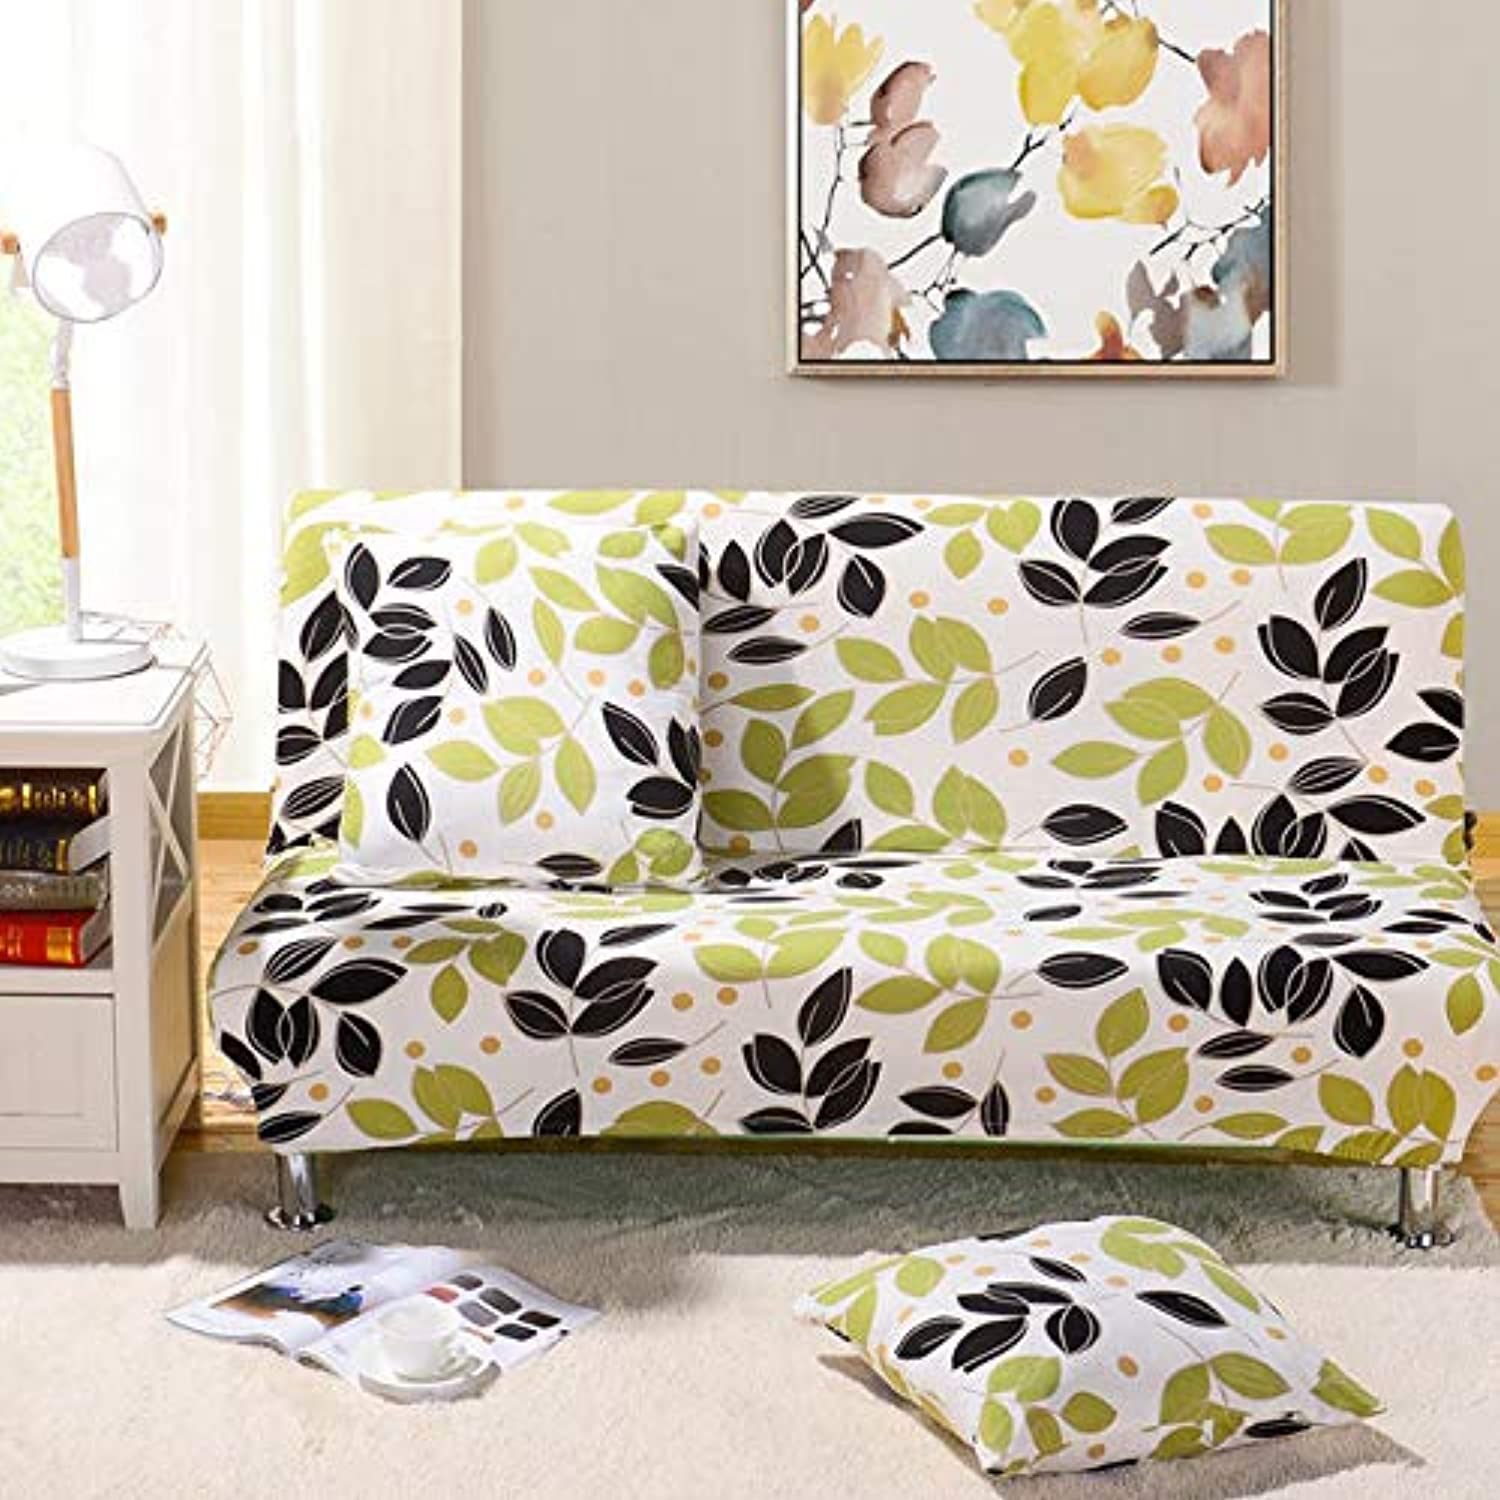 Elastic Sofa Bed Cover No armrest Removable Stretch Slipcovers for Couch All-Inclusive Folding Furniture Sofa Cover S M L Sizes   color 3, Medium Size